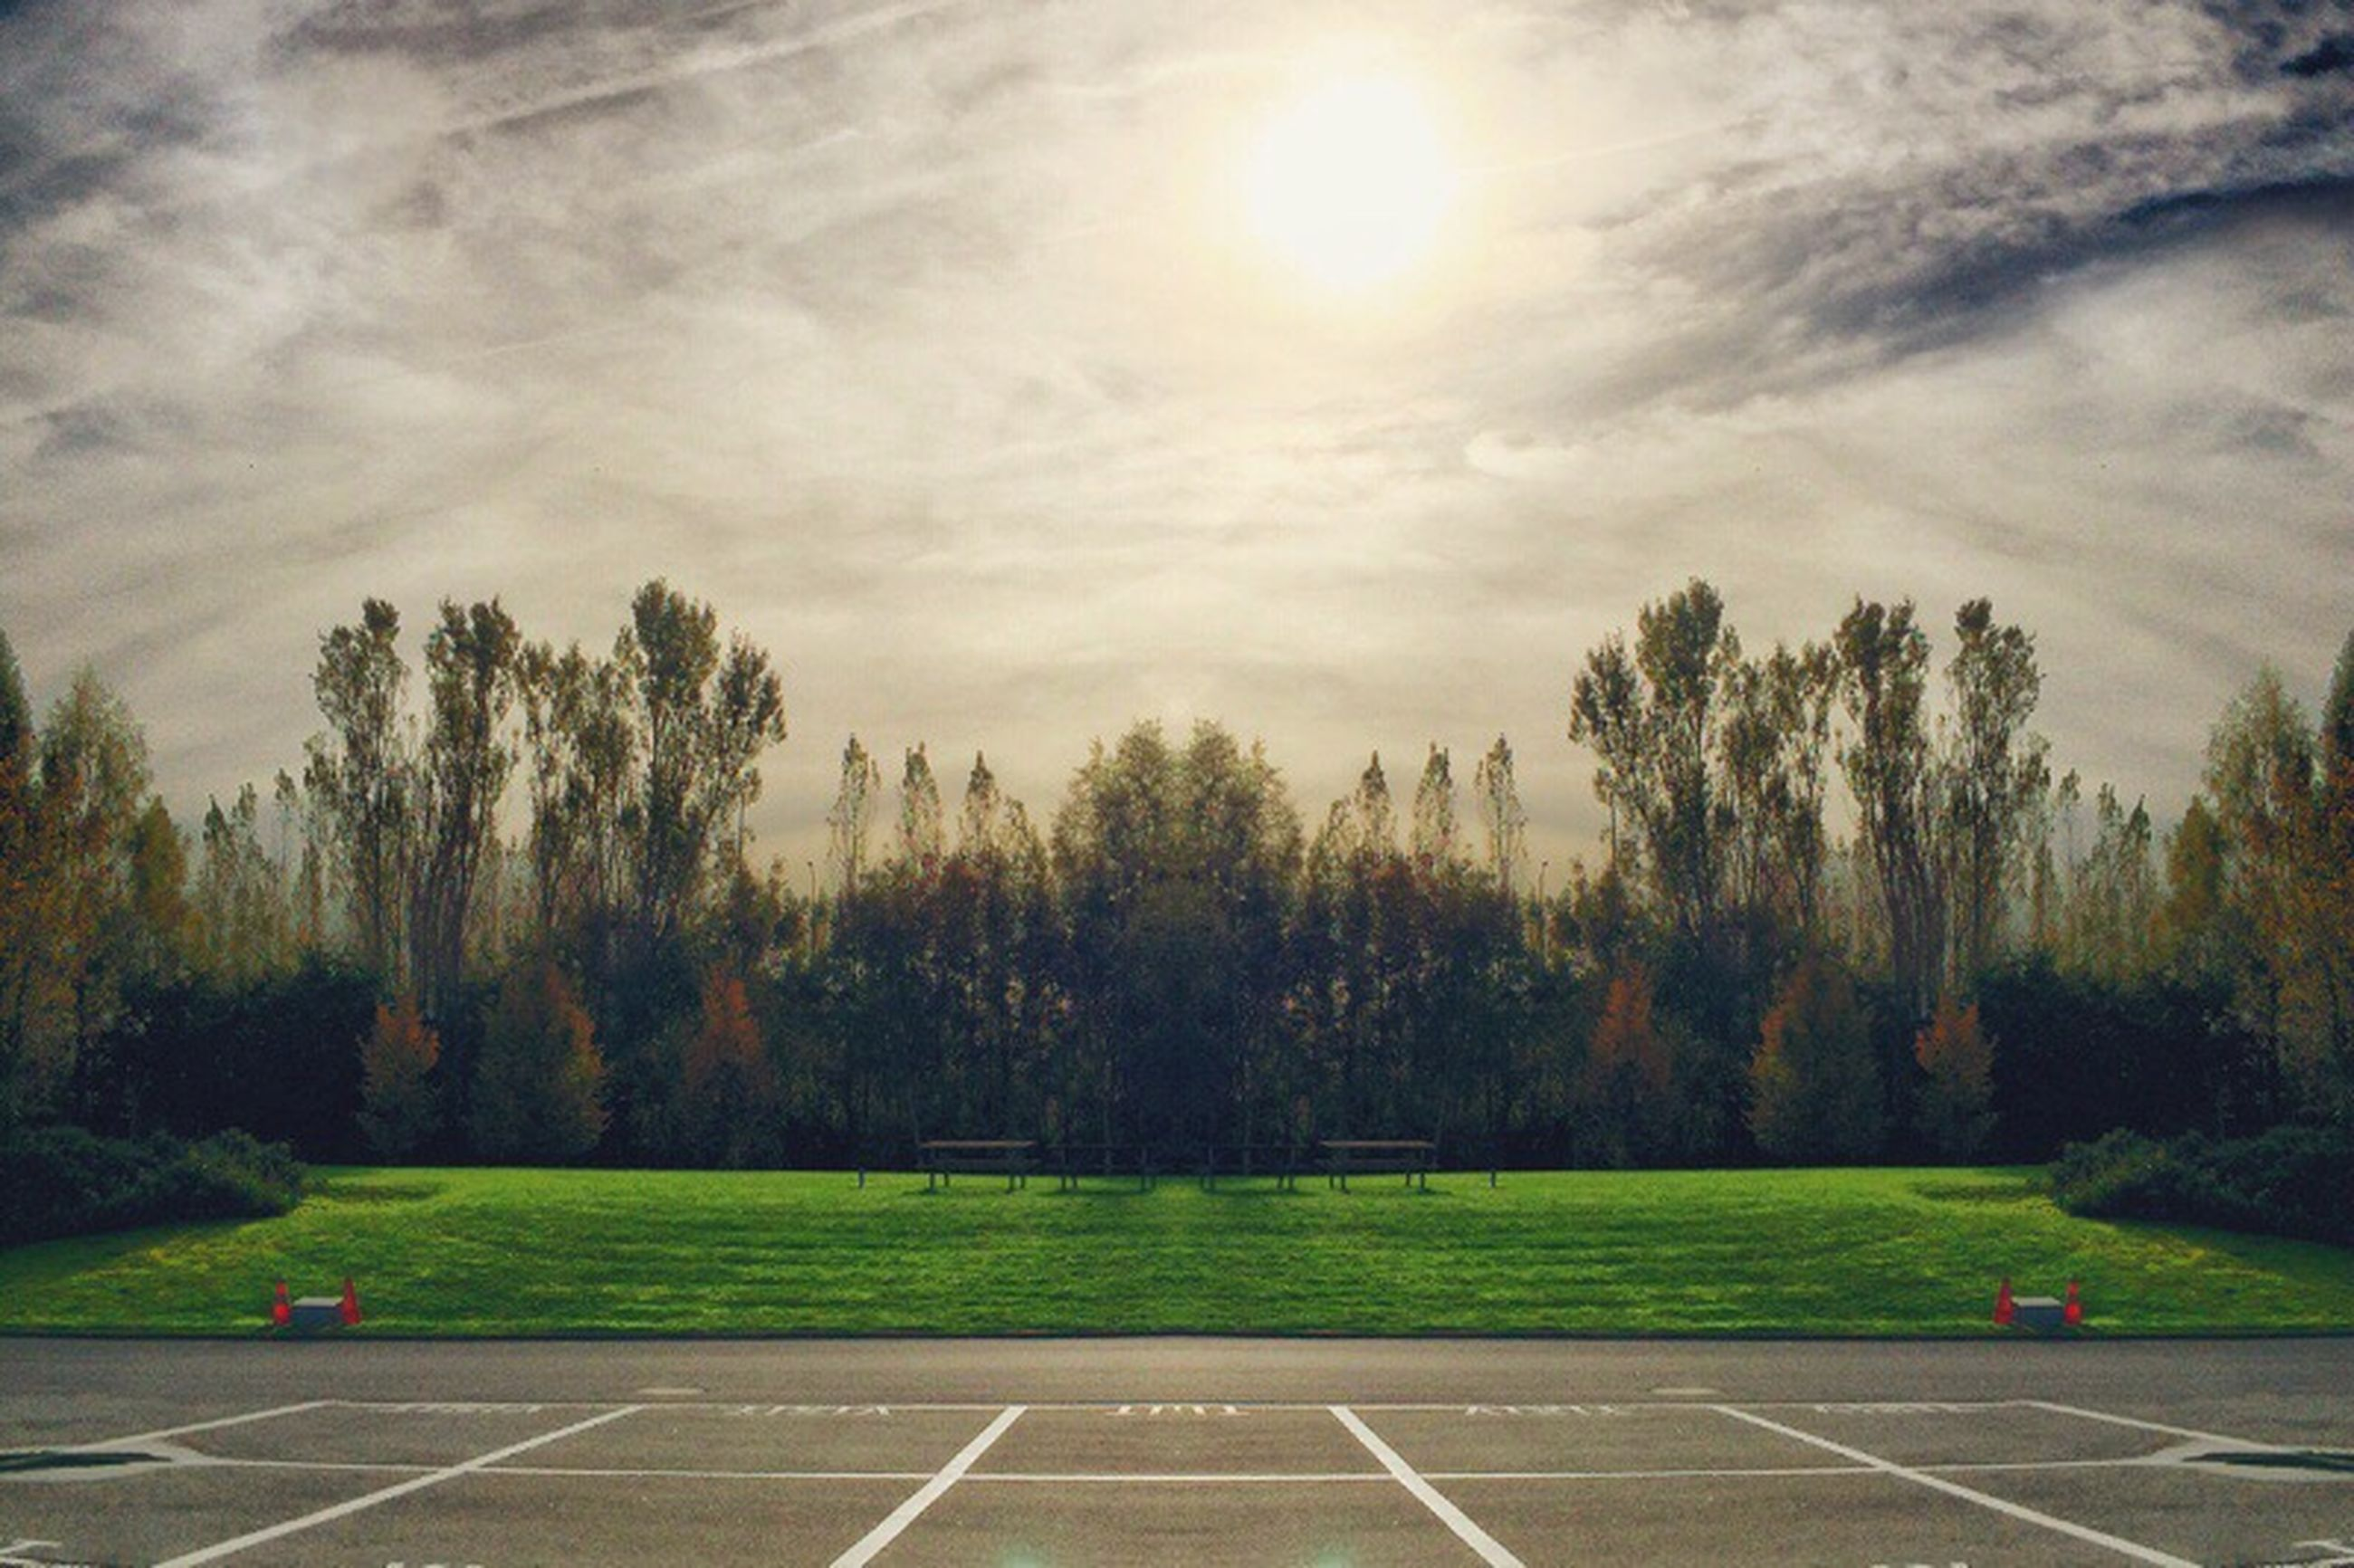 tree, sky, tranquility, grass, sunlight, tranquil scene, nature, beauty in nature, cloud - sky, scenics, growth, park - man made space, sun, sunbeam, landscape, road, outdoors, no people, field, lens flare